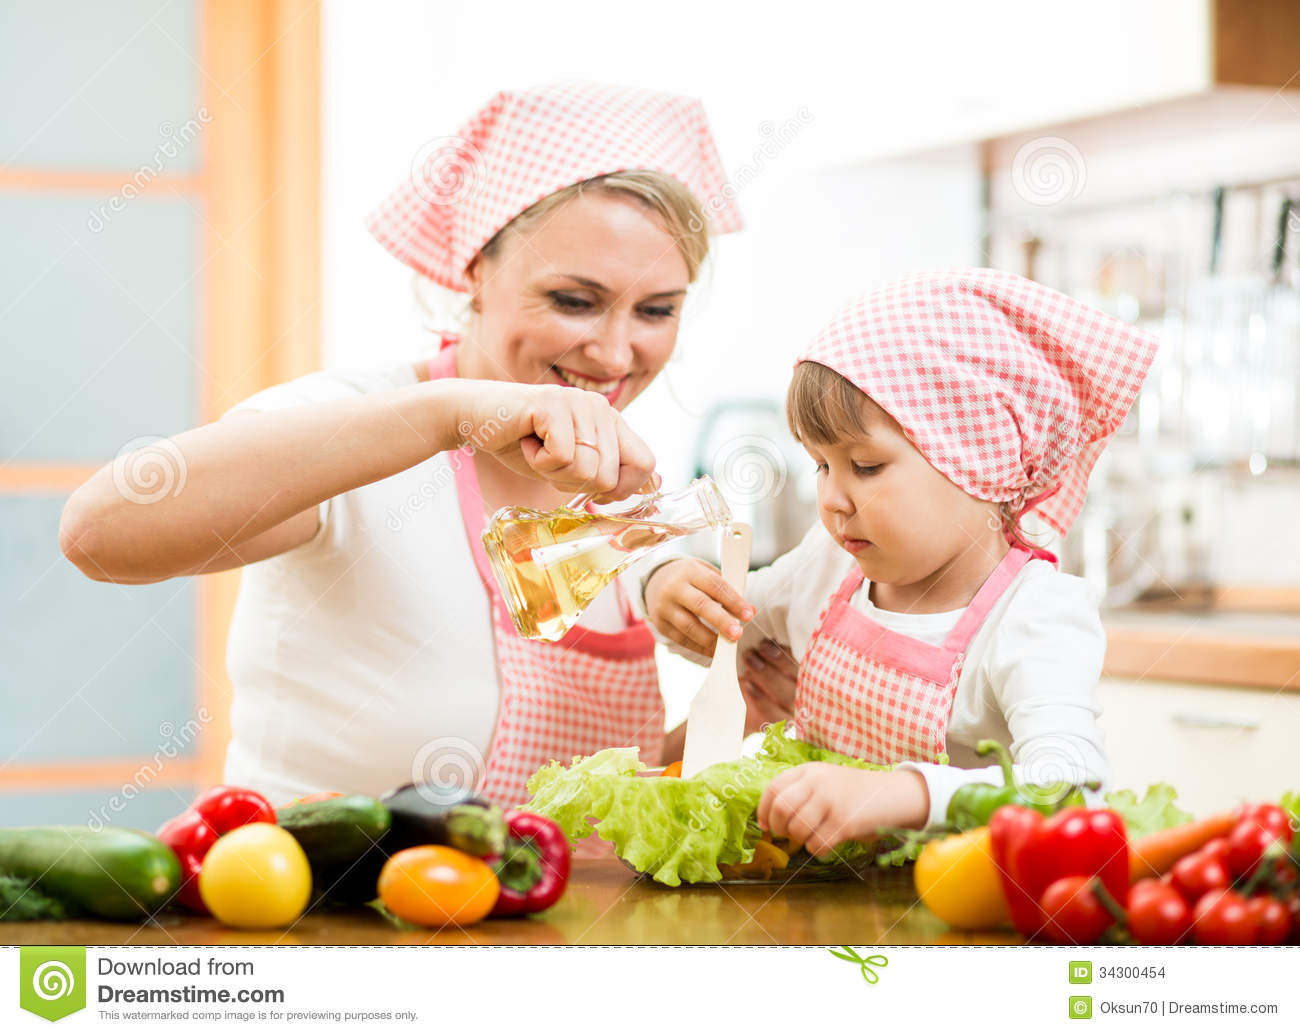 Woman And Child Preparing Healthy Food Together Stock